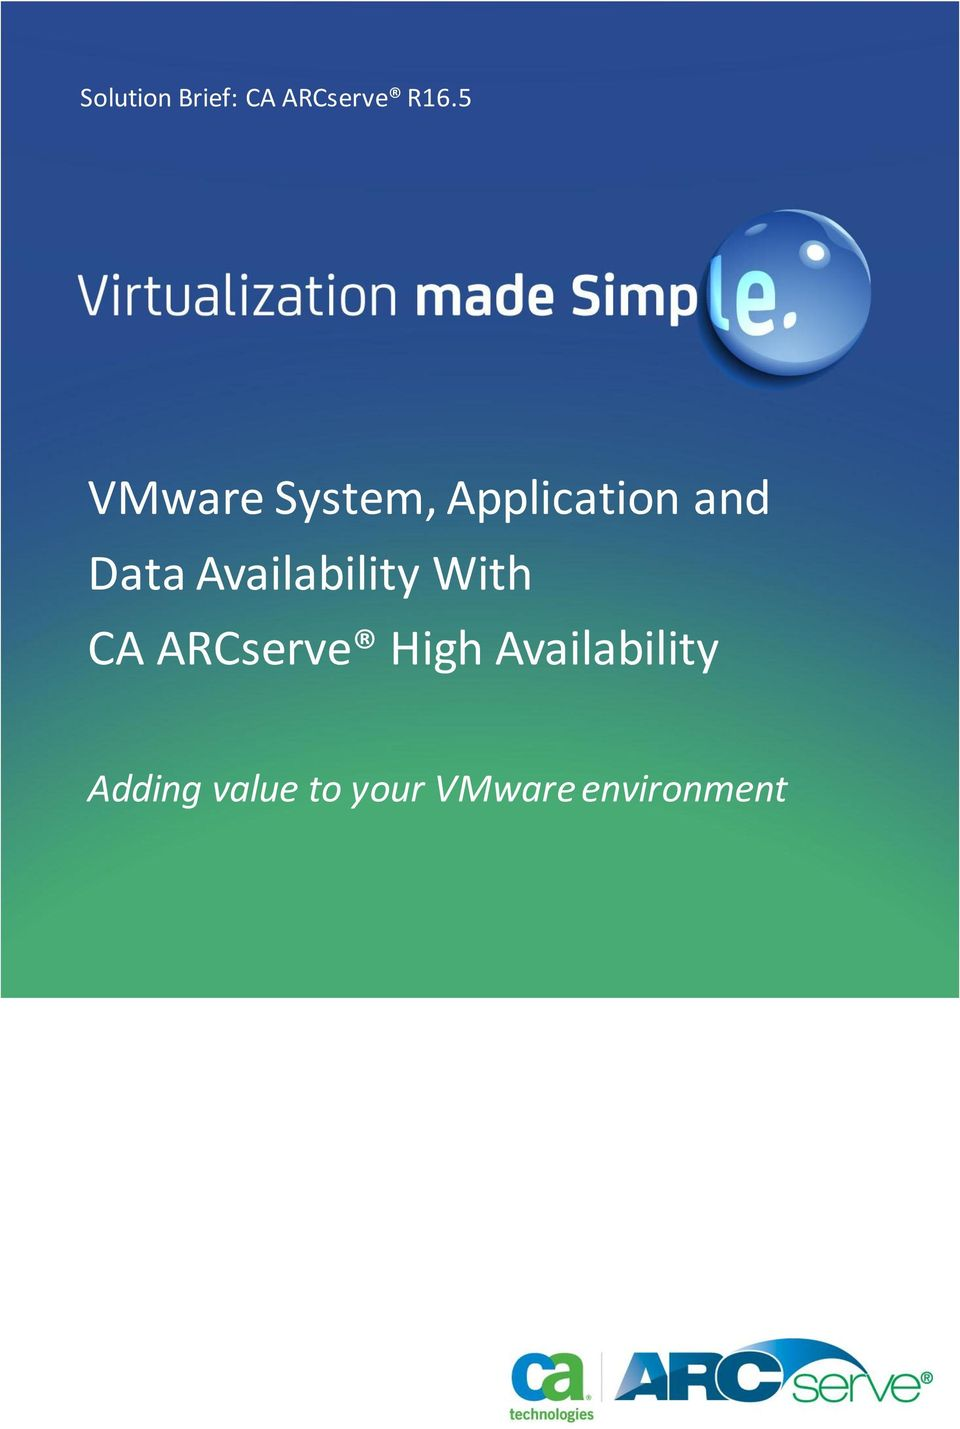 Application and Data Availability With CA